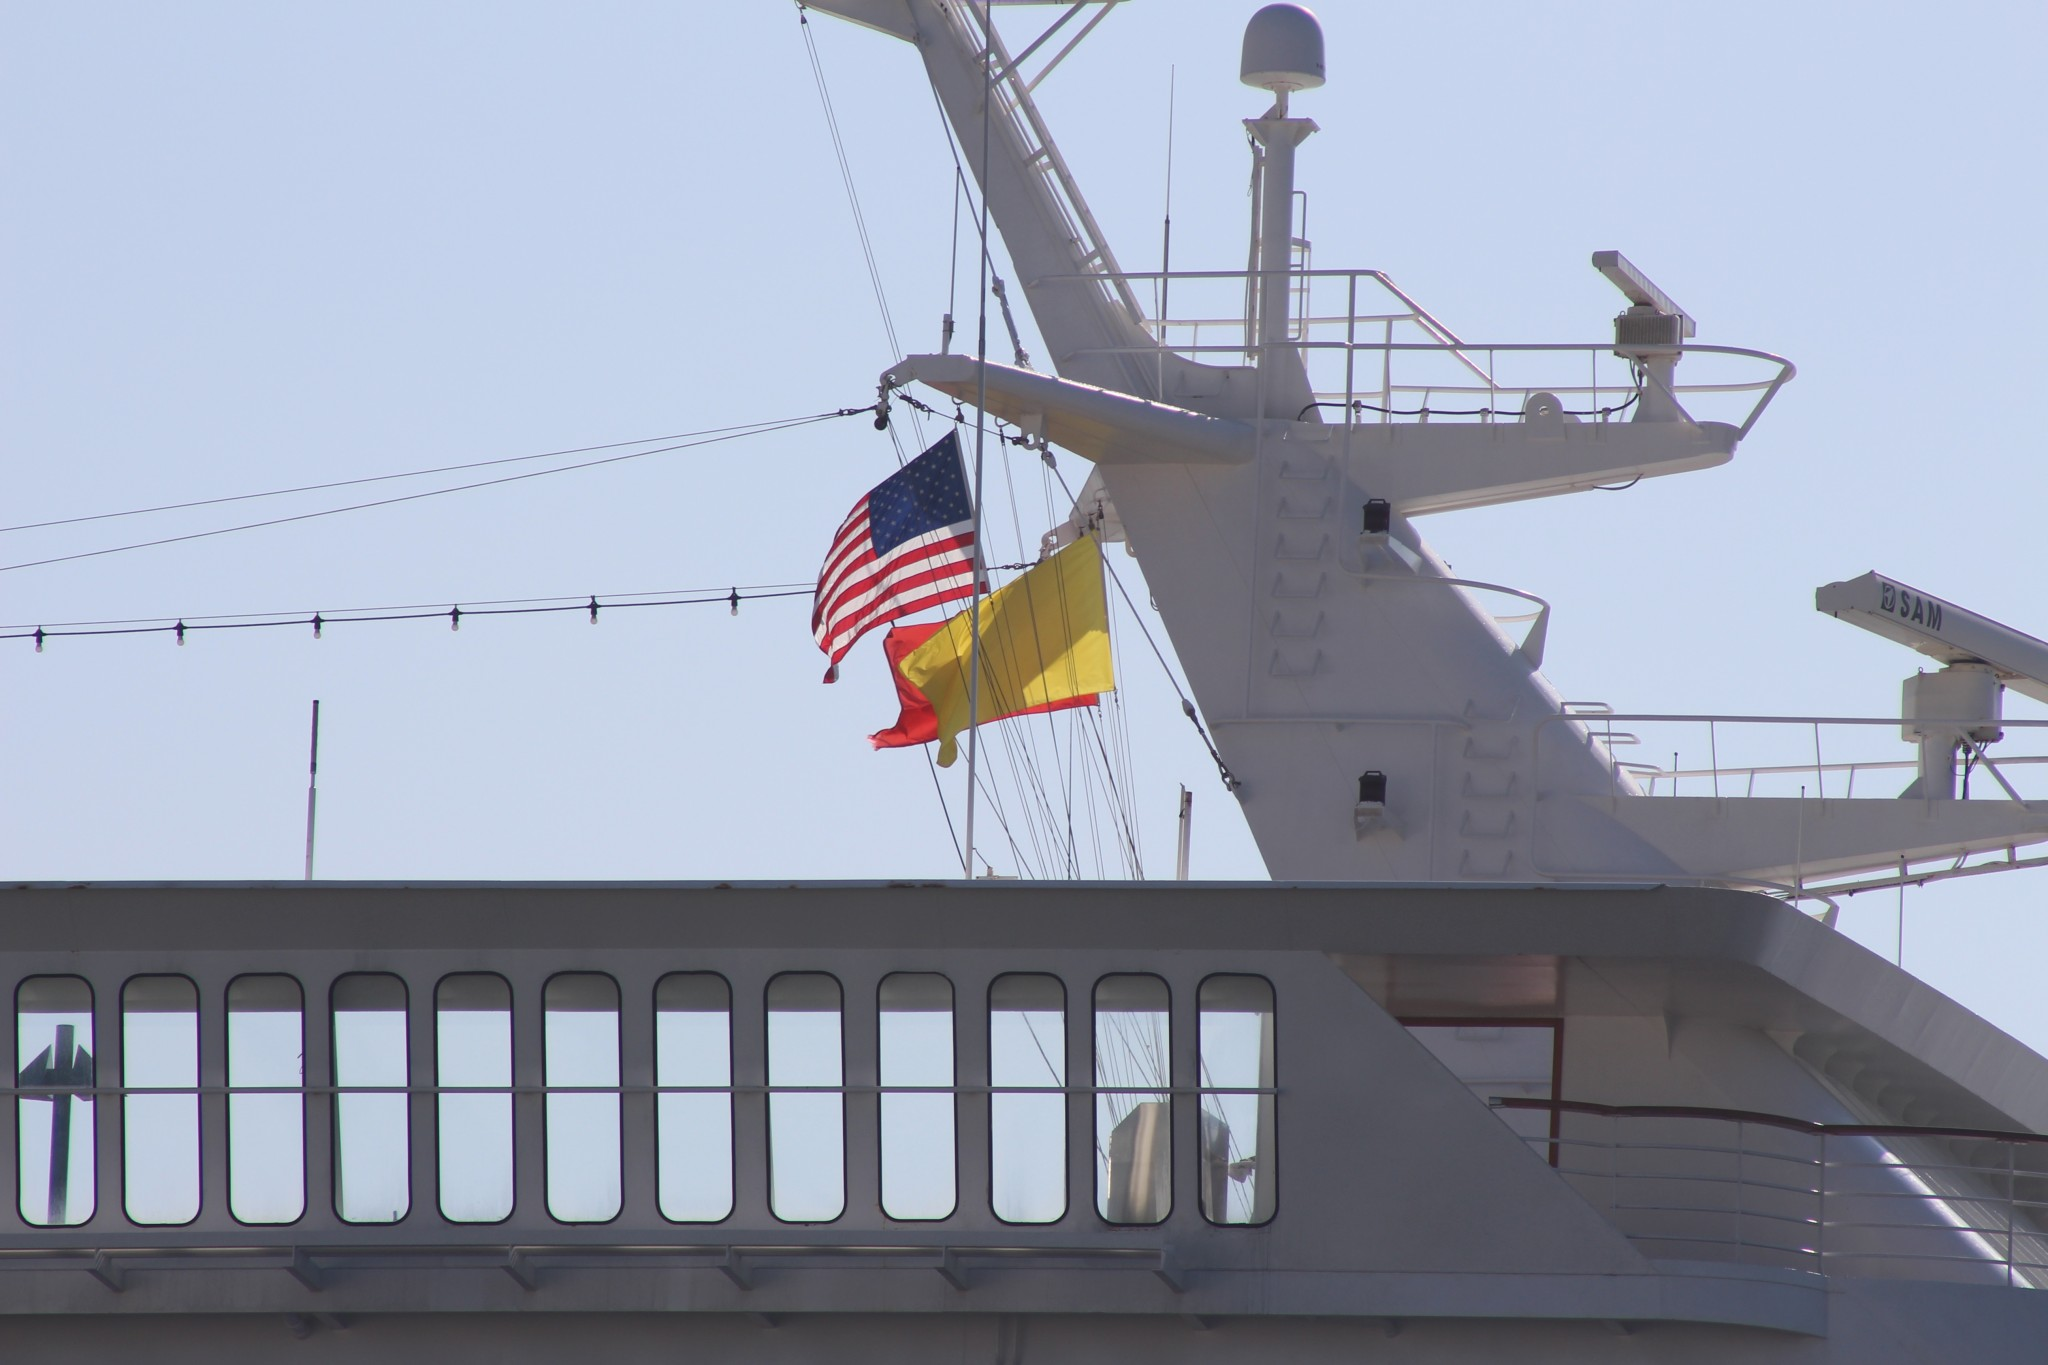 A ship flies several flags at the Port of Long Beach. Photo: Karen Foshay